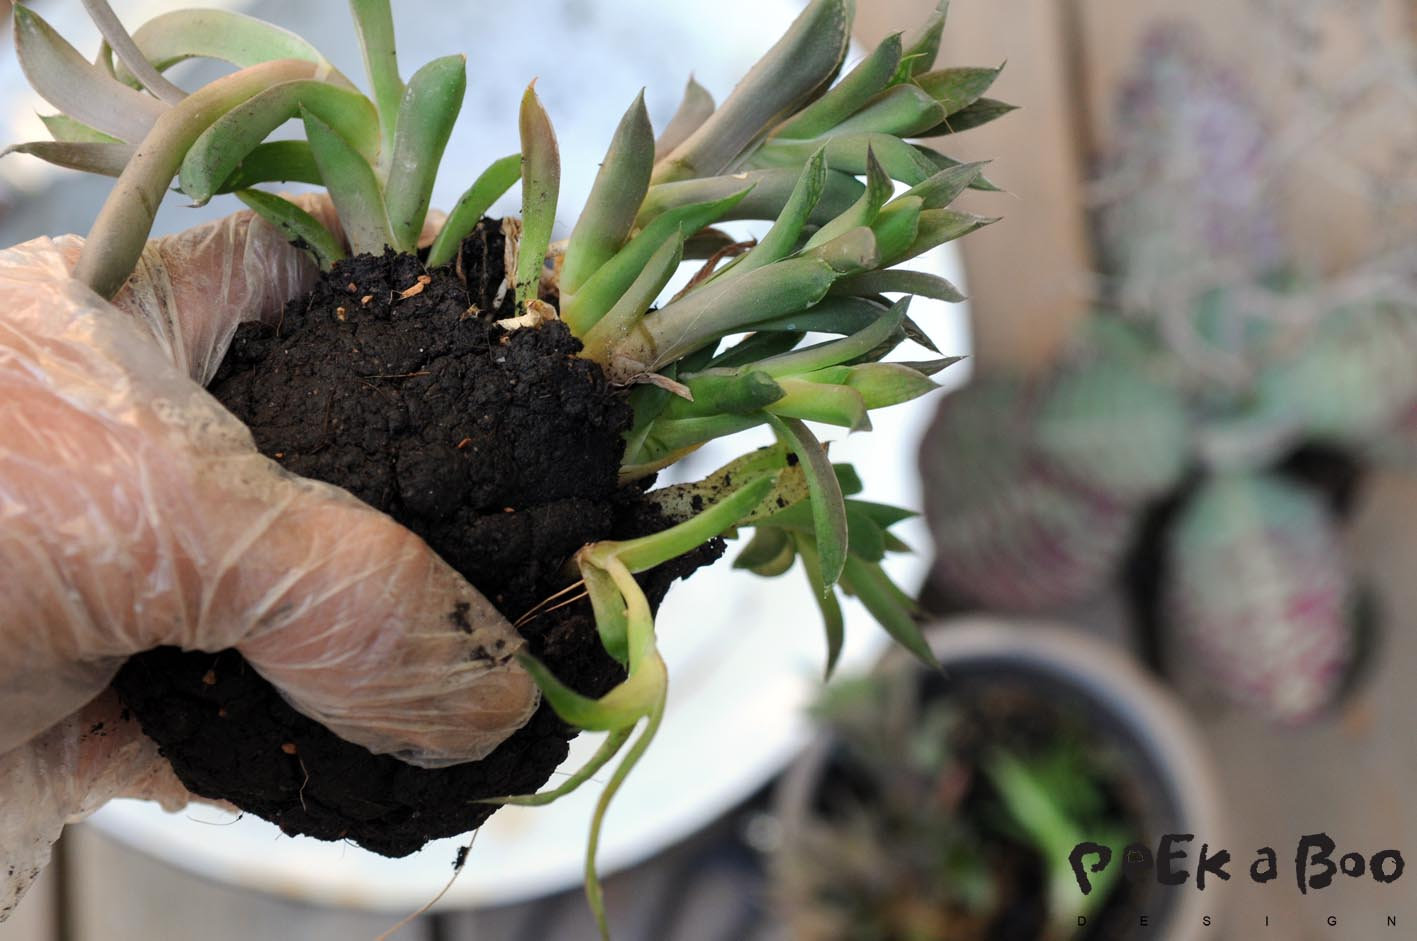 Release the soil from your plants so you only have the roots, and wrap them in the soil balls.